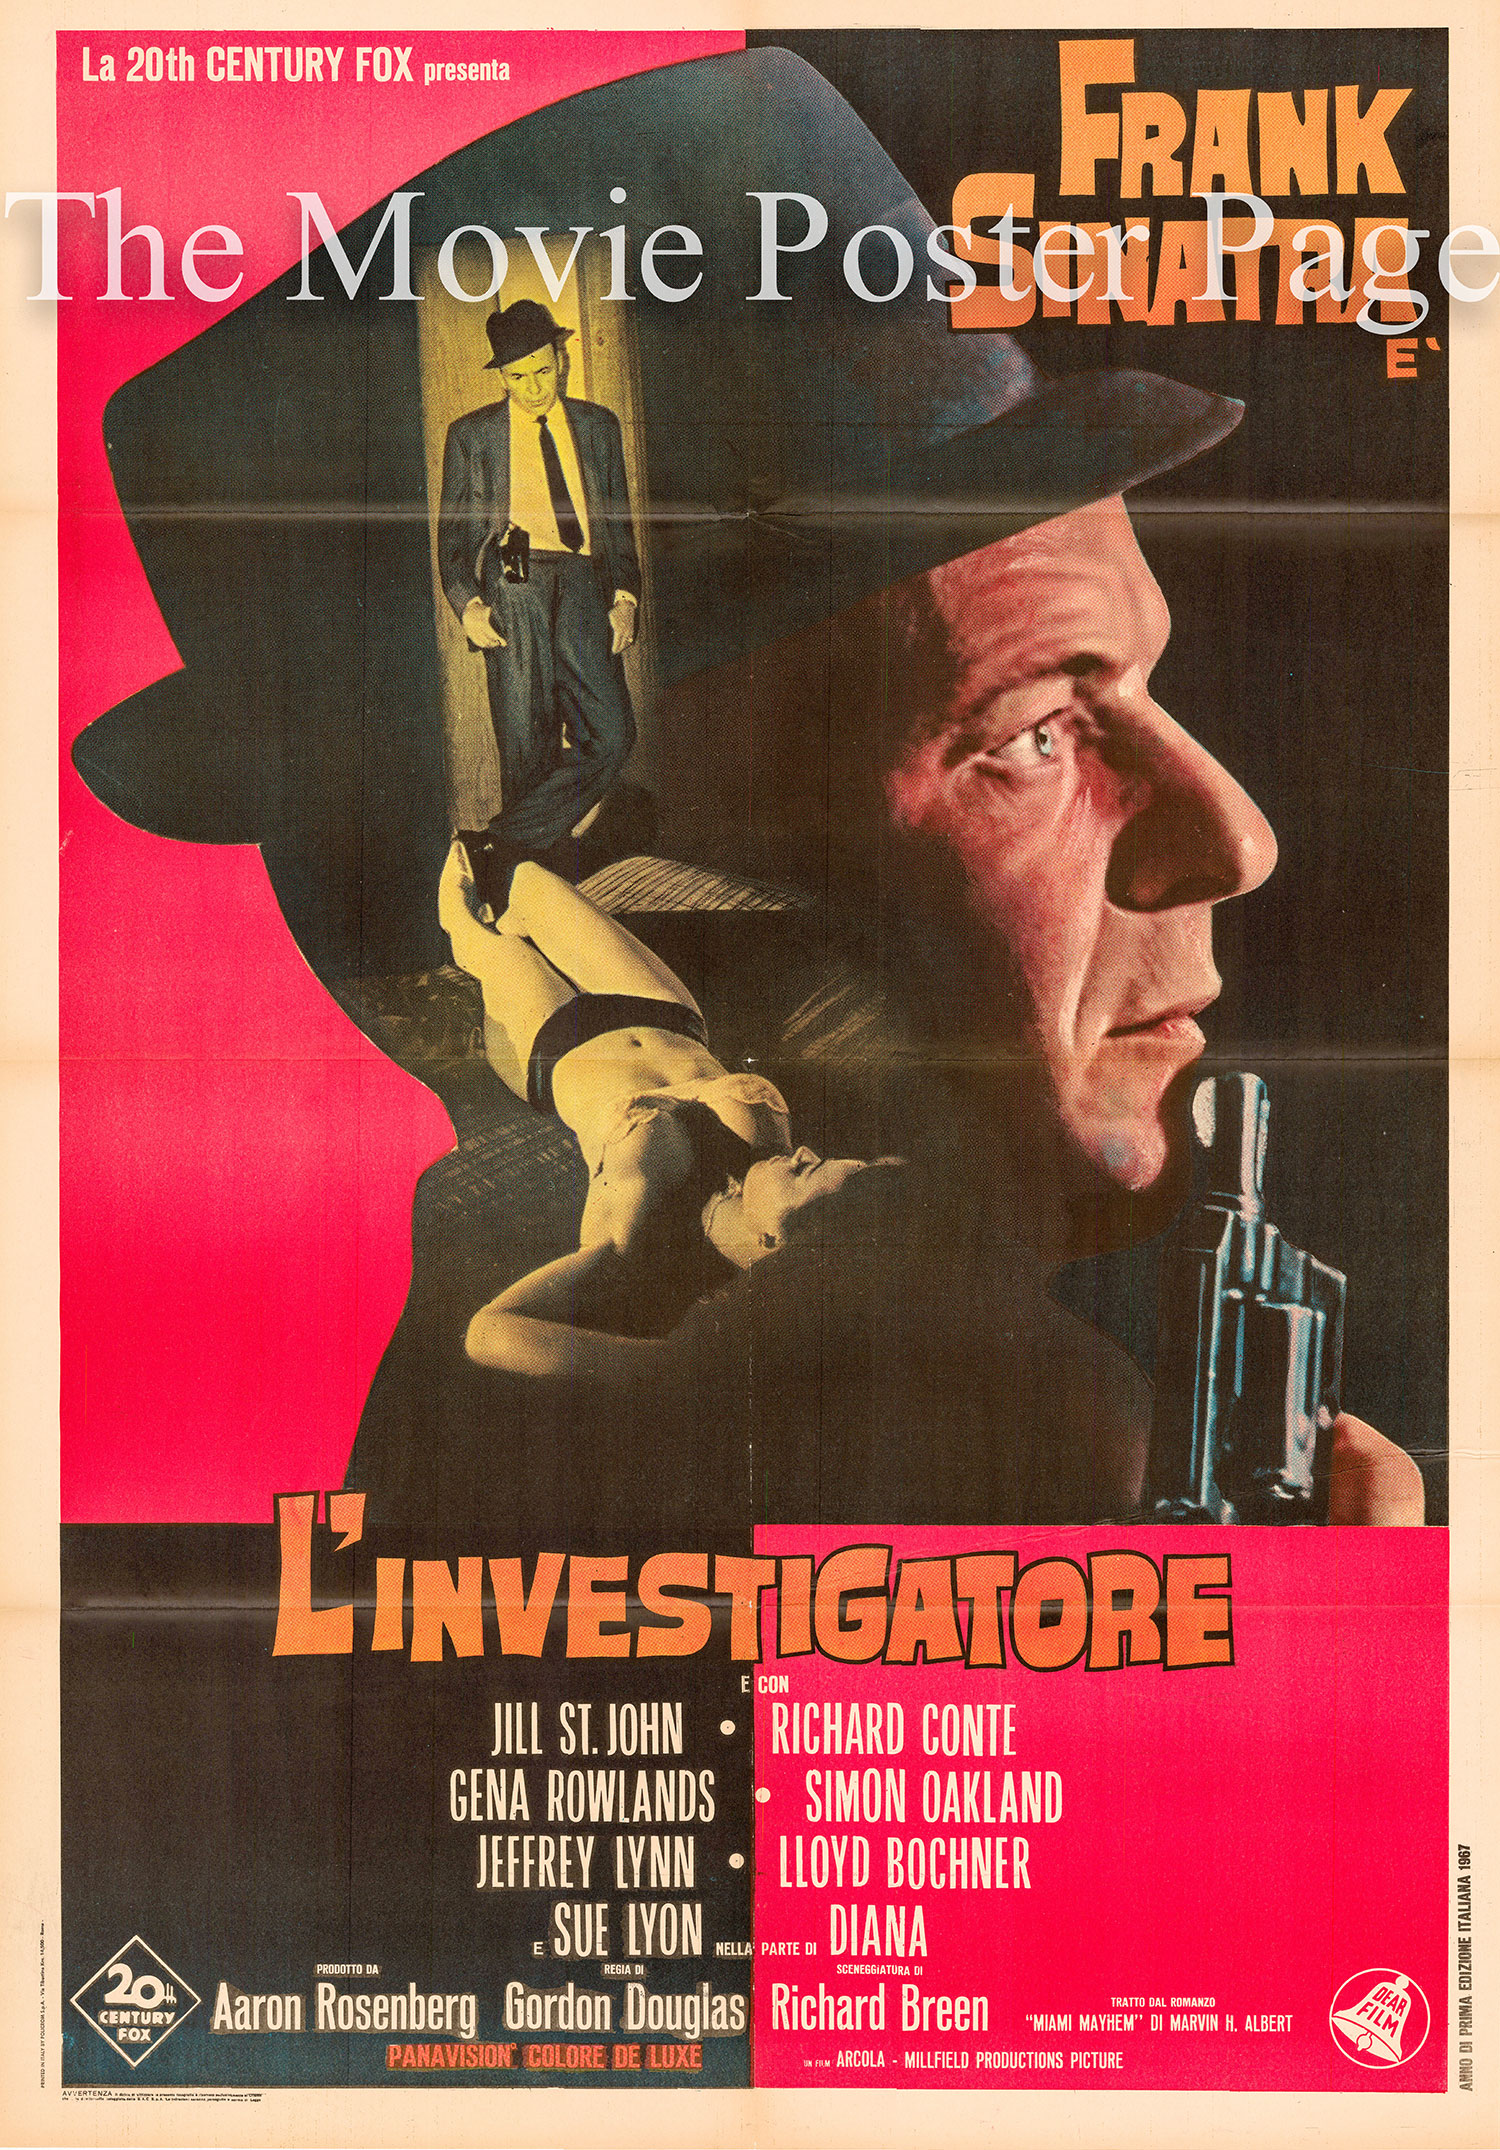 Pictured is an Italian two-sheet poster for the 1967 Gordon Douglas film <i>Tony Rome</i> starring Frank Sinatra.